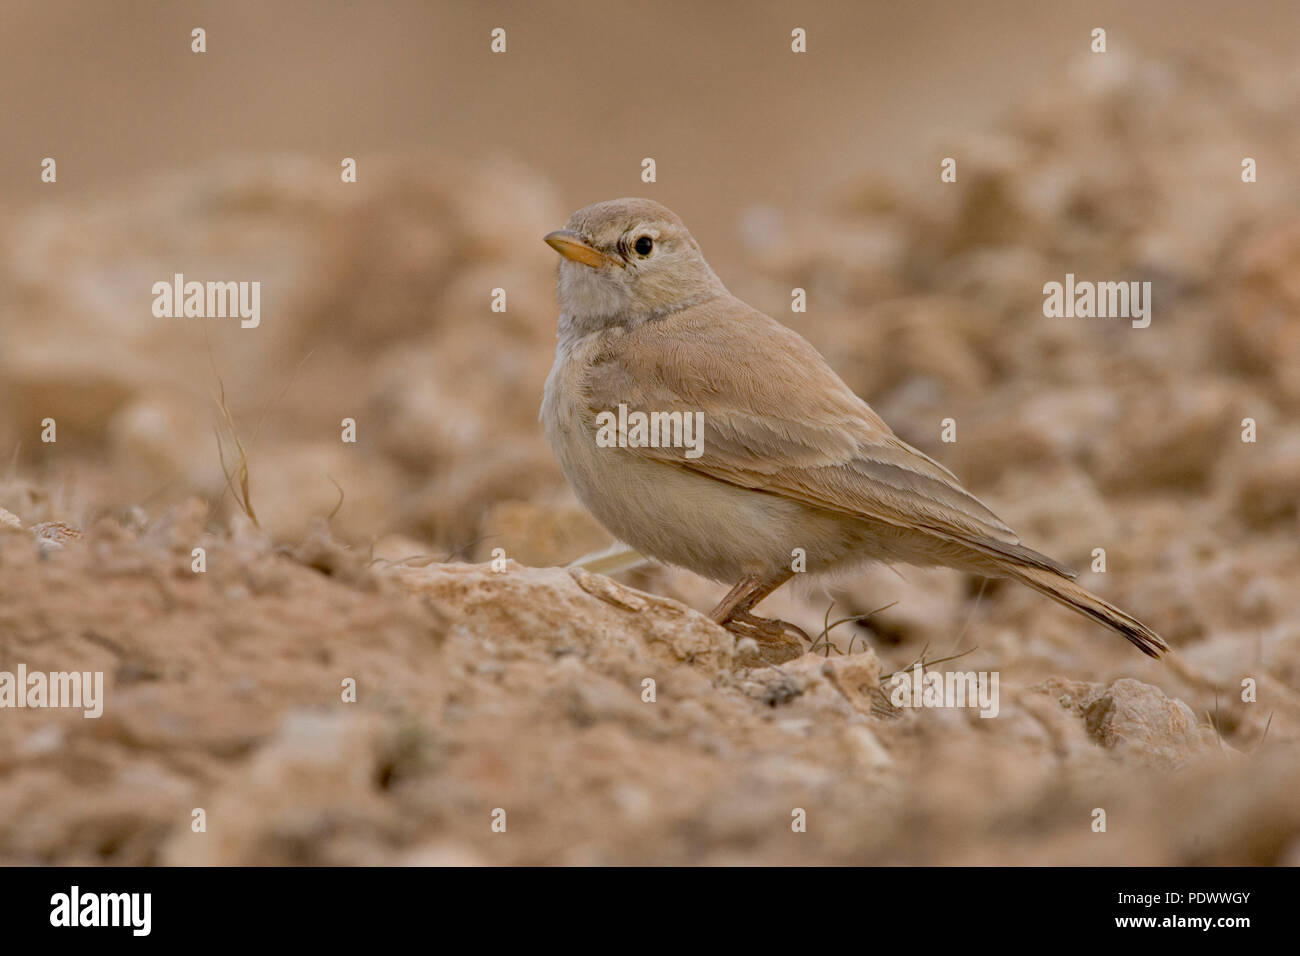 Desert Lark on pebble stone, side view. - Stock Image